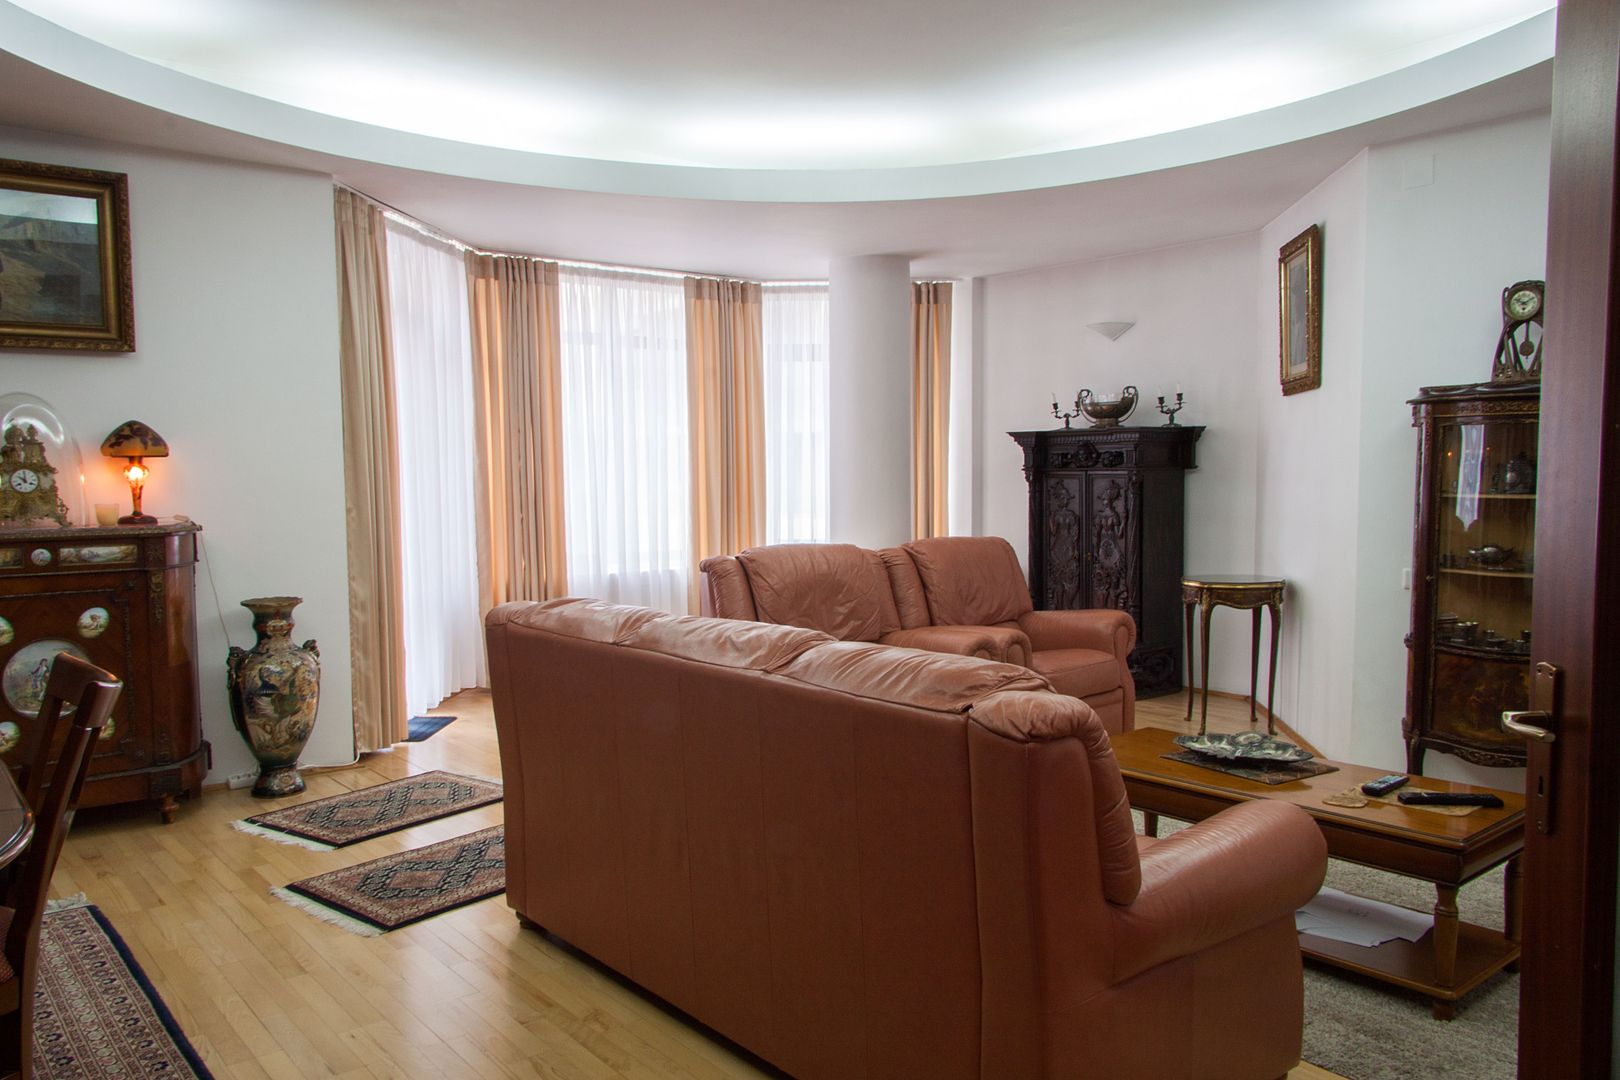 Residential Property with4 apartments for sale in Primaverii Area